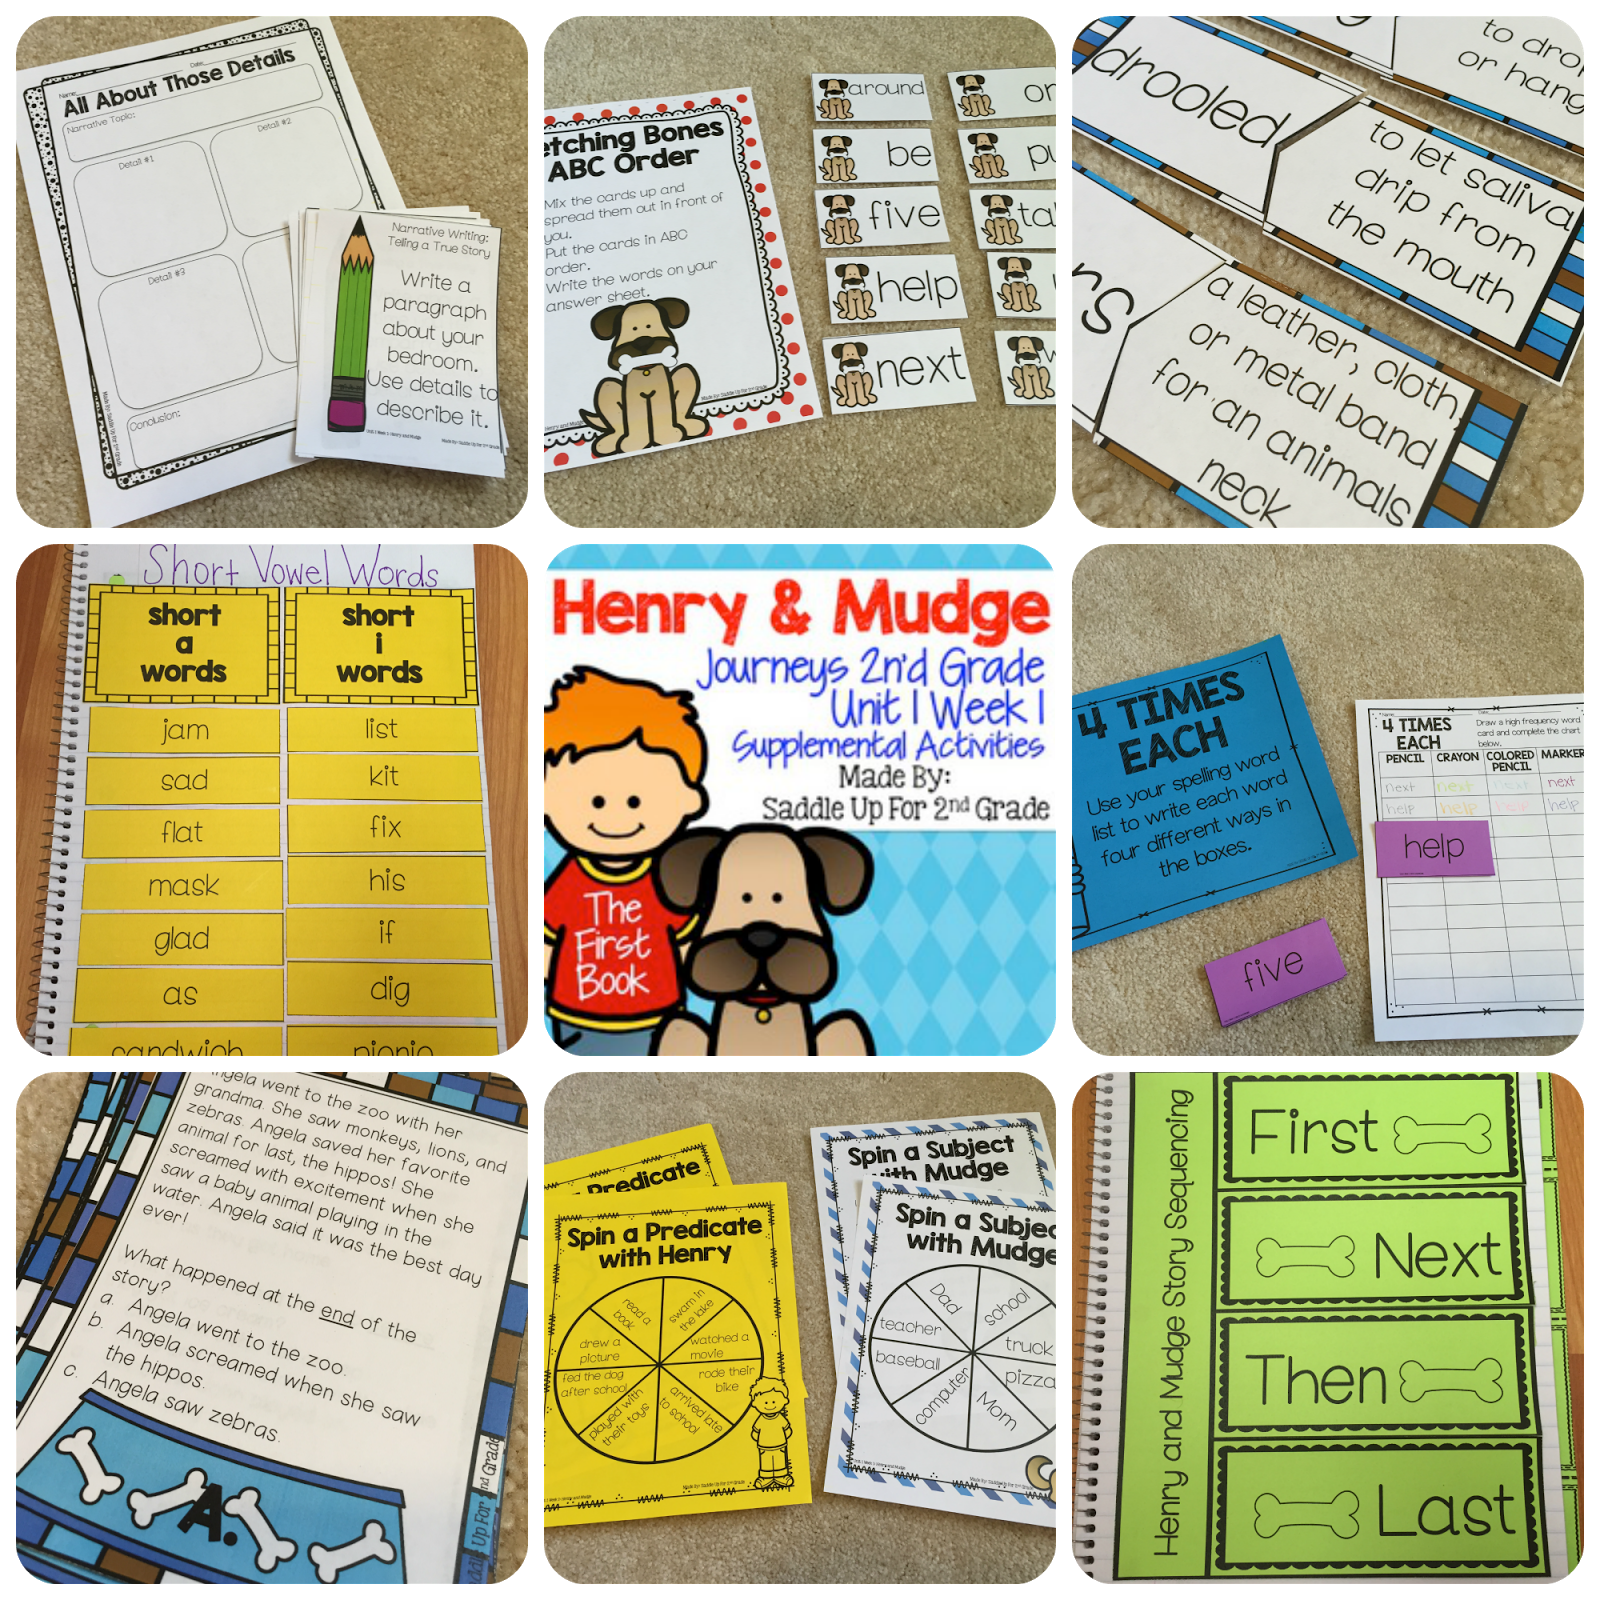 Henry And Mudge The First Book Journeys 2nd Grade